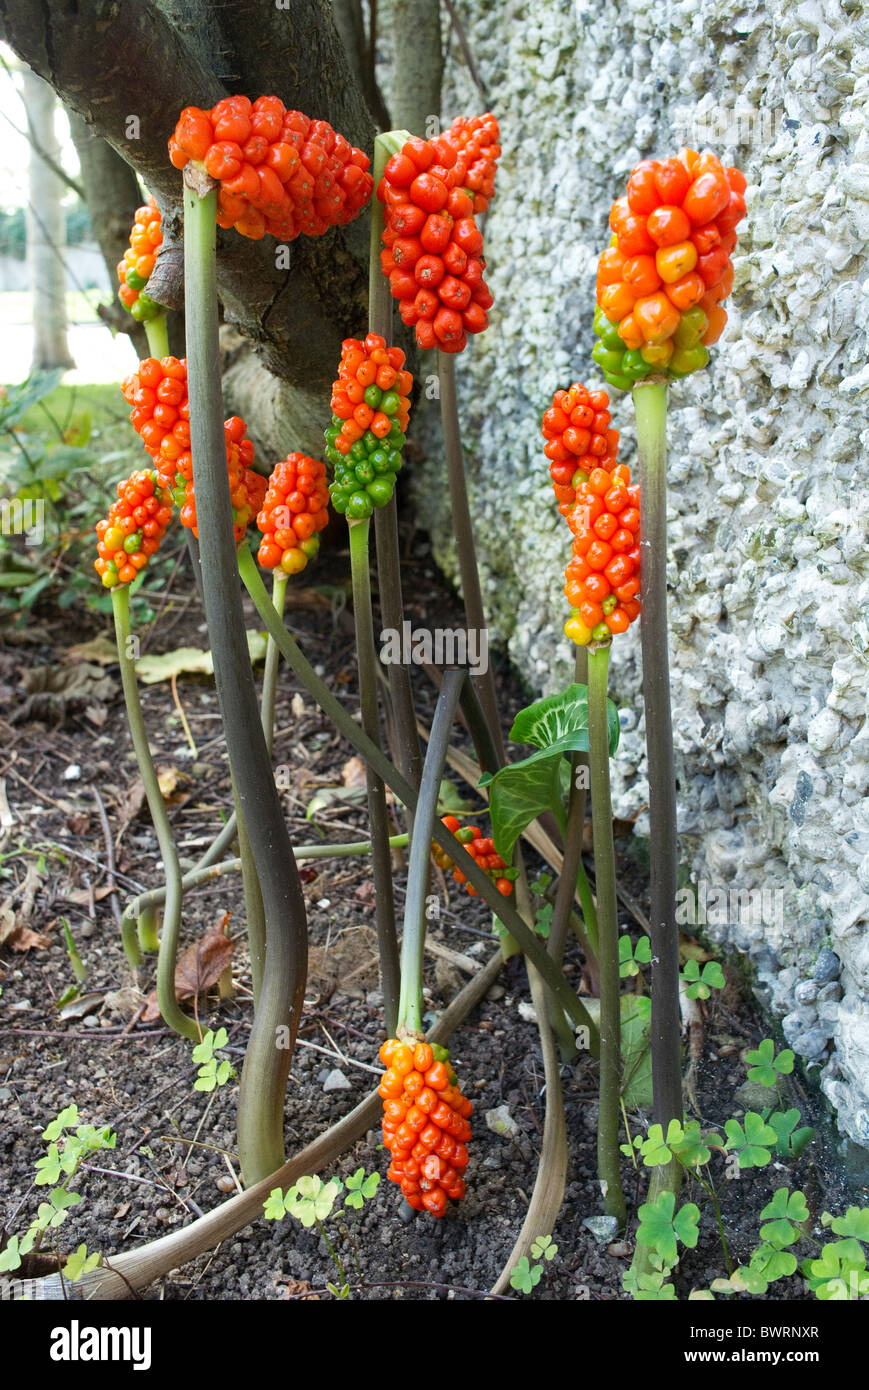 Italian Arum or Lords and Ladies or orange candleflower. Poisonous! - Stock Image